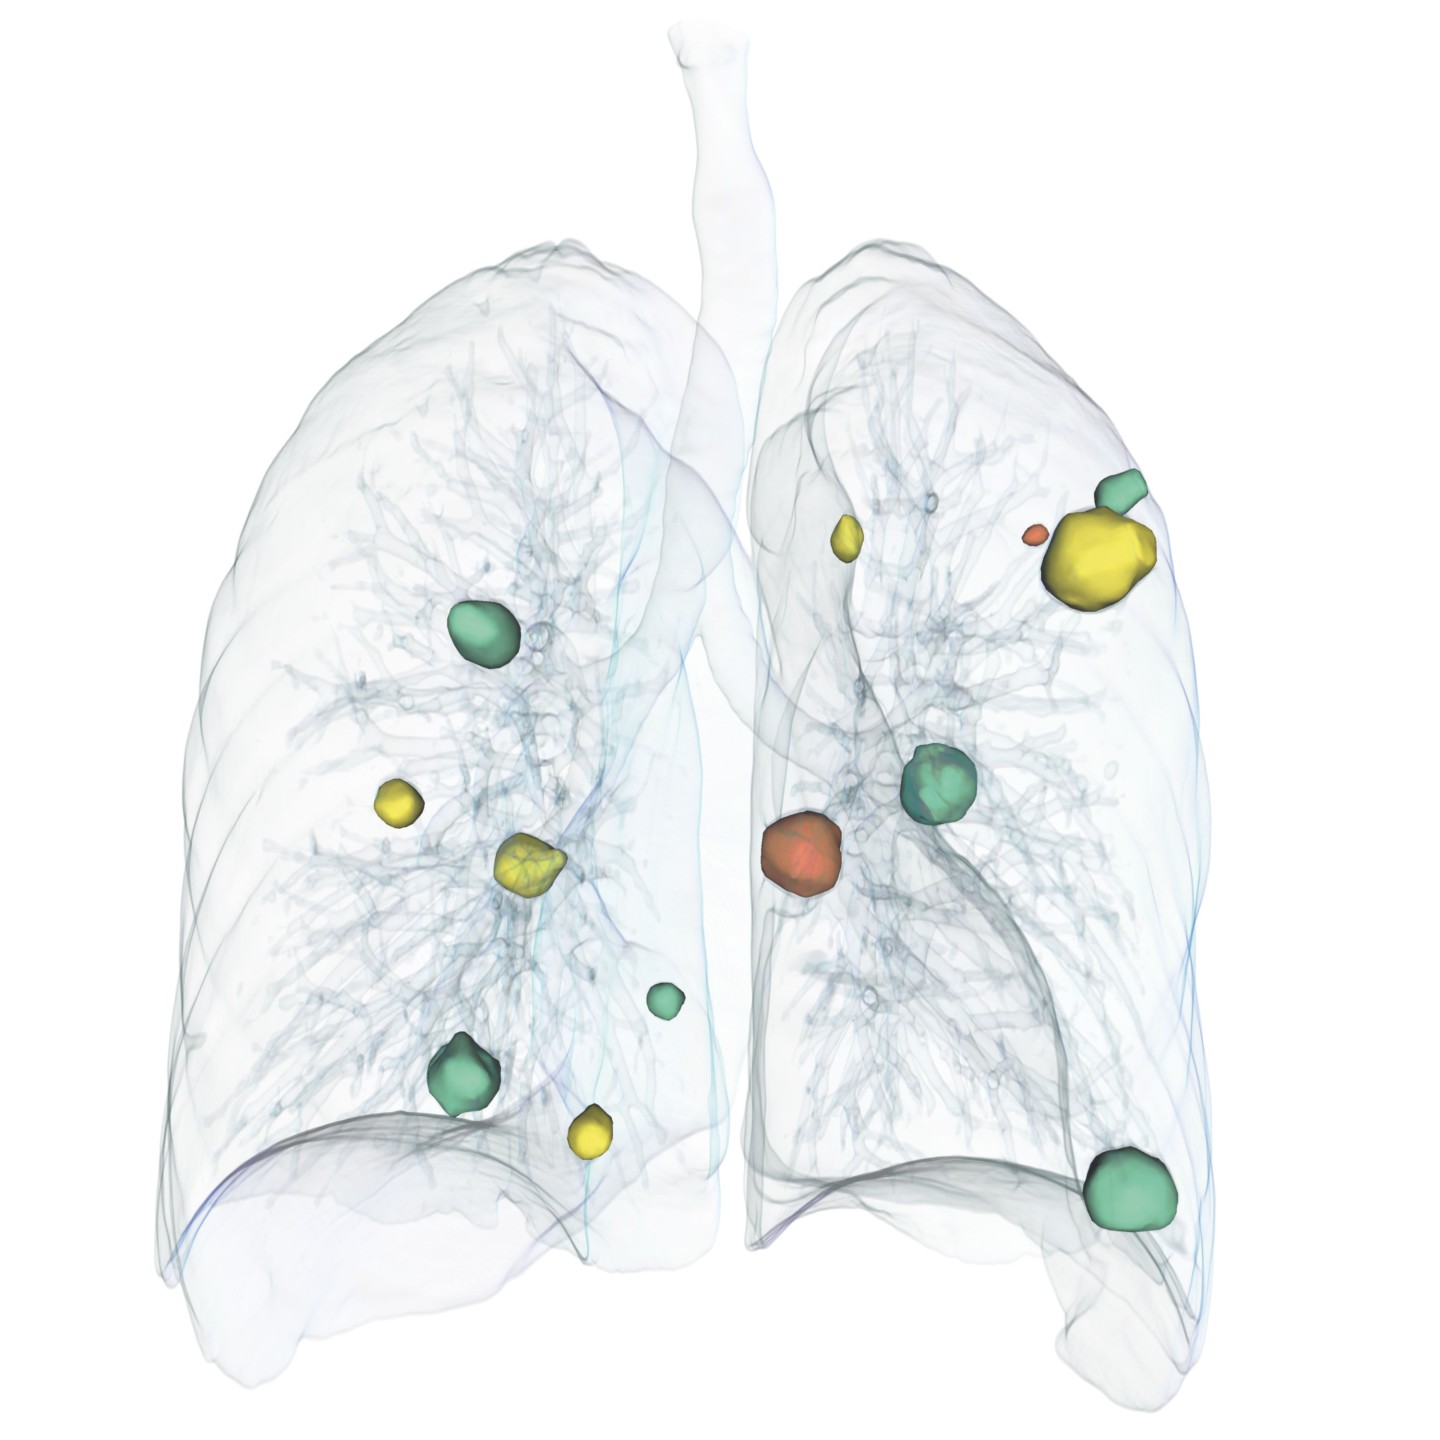 Lung Tumors Metastasis